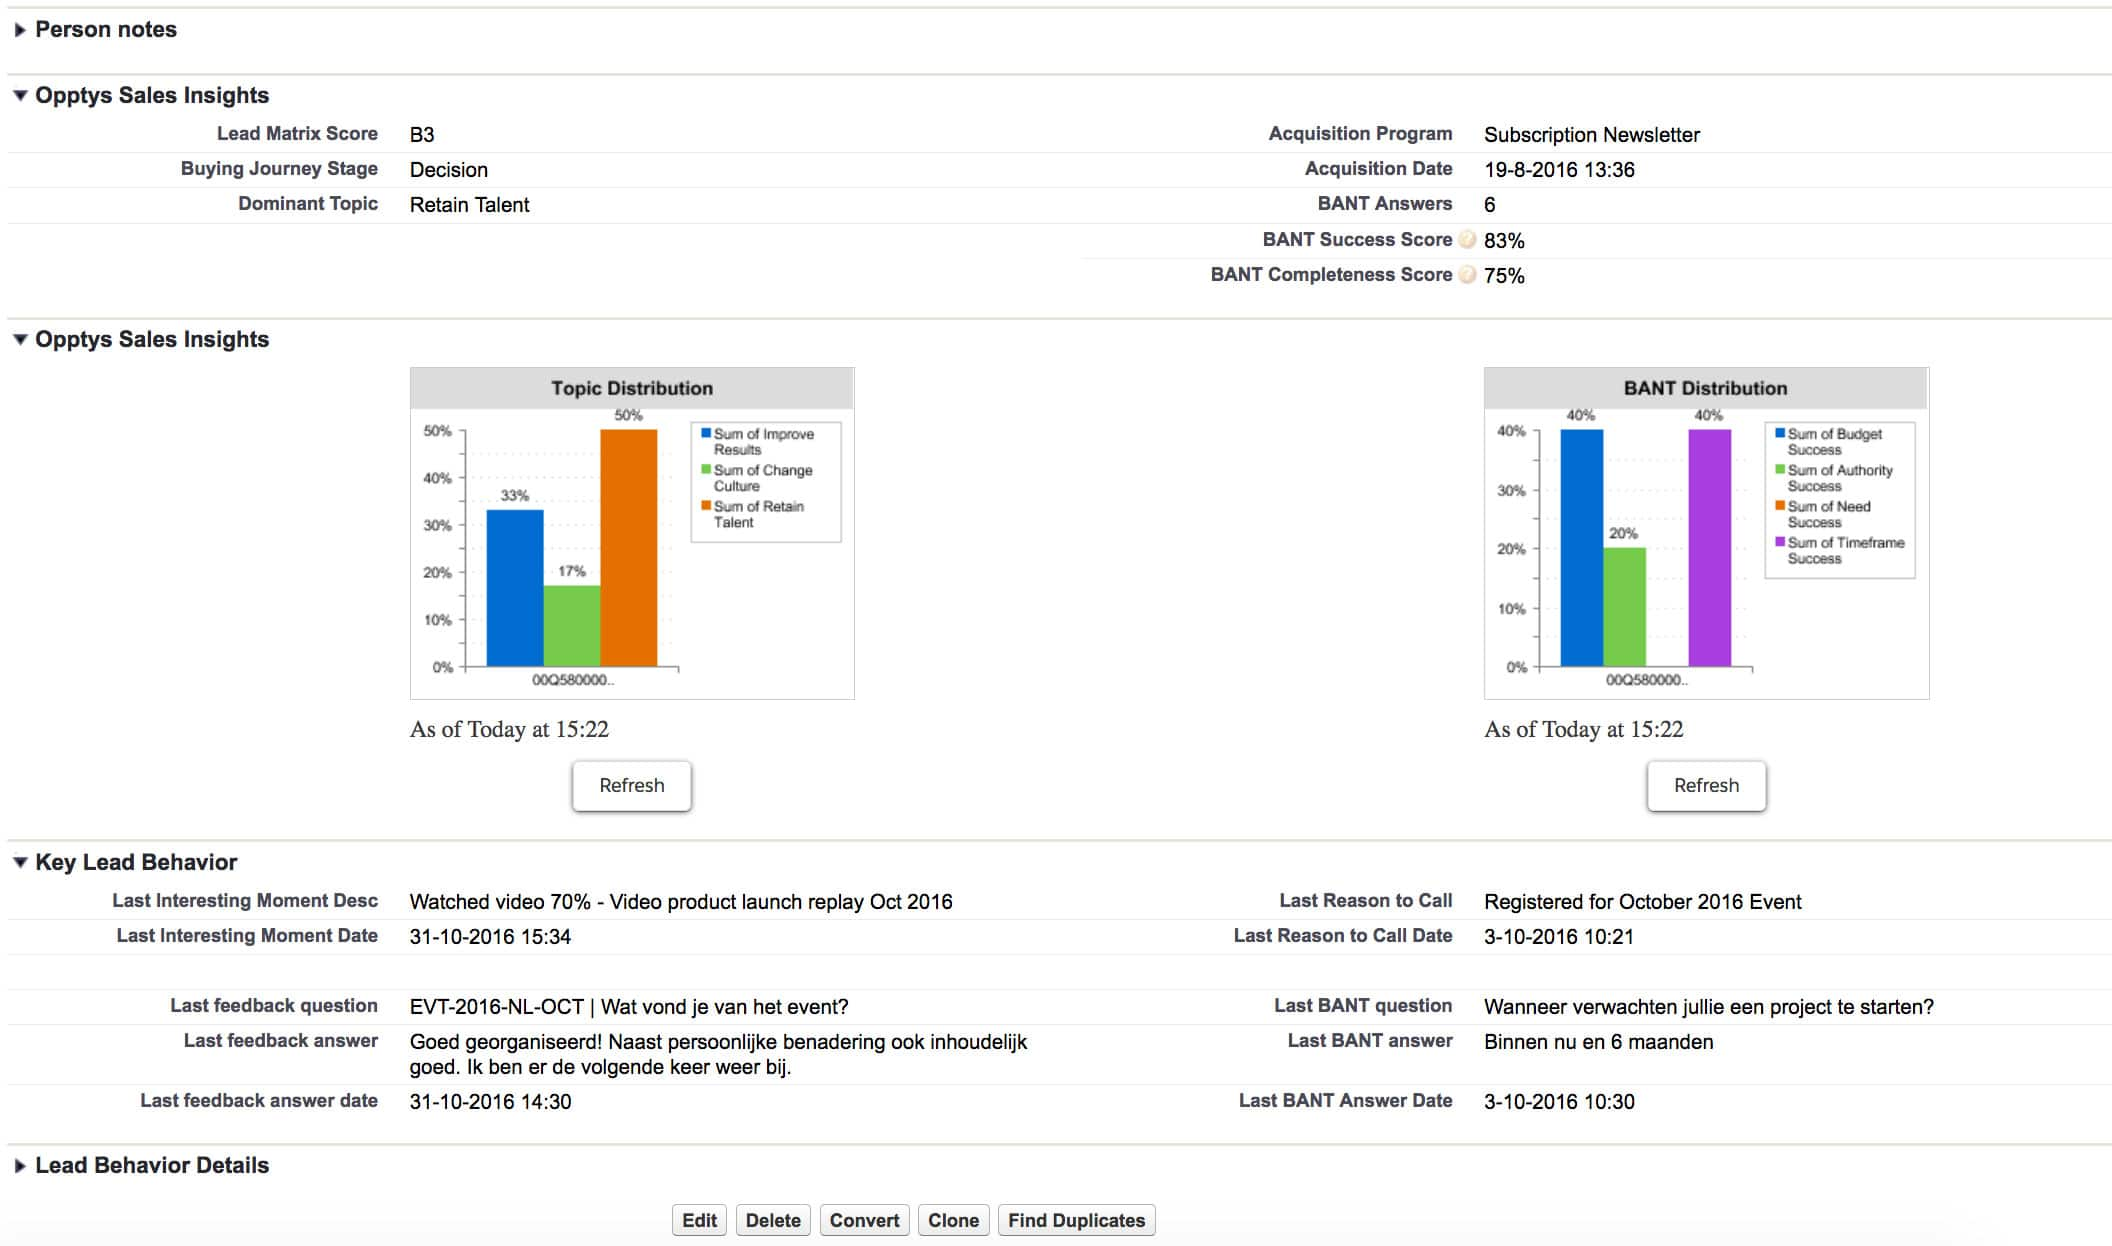 Voorbeeld Leaddetails in Salesforce.com CRM